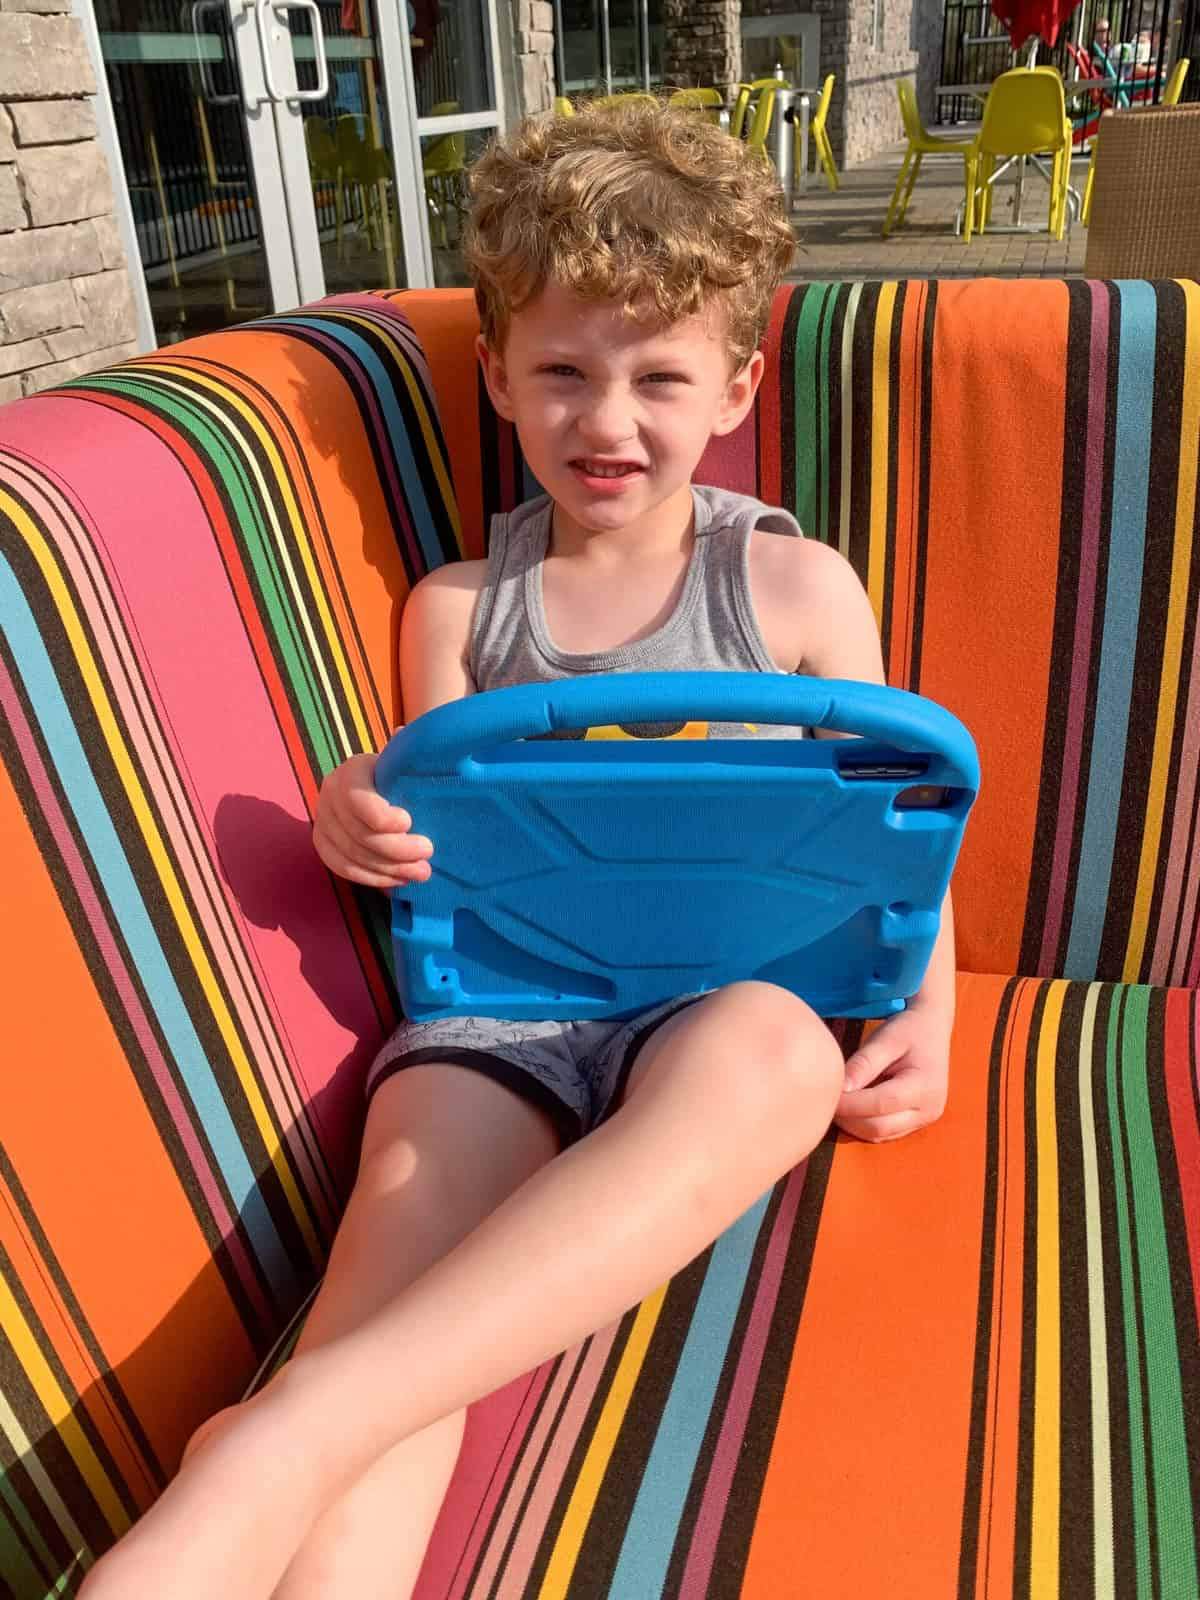 Young boy holding ipad in blue ipad case on an outdoor chair